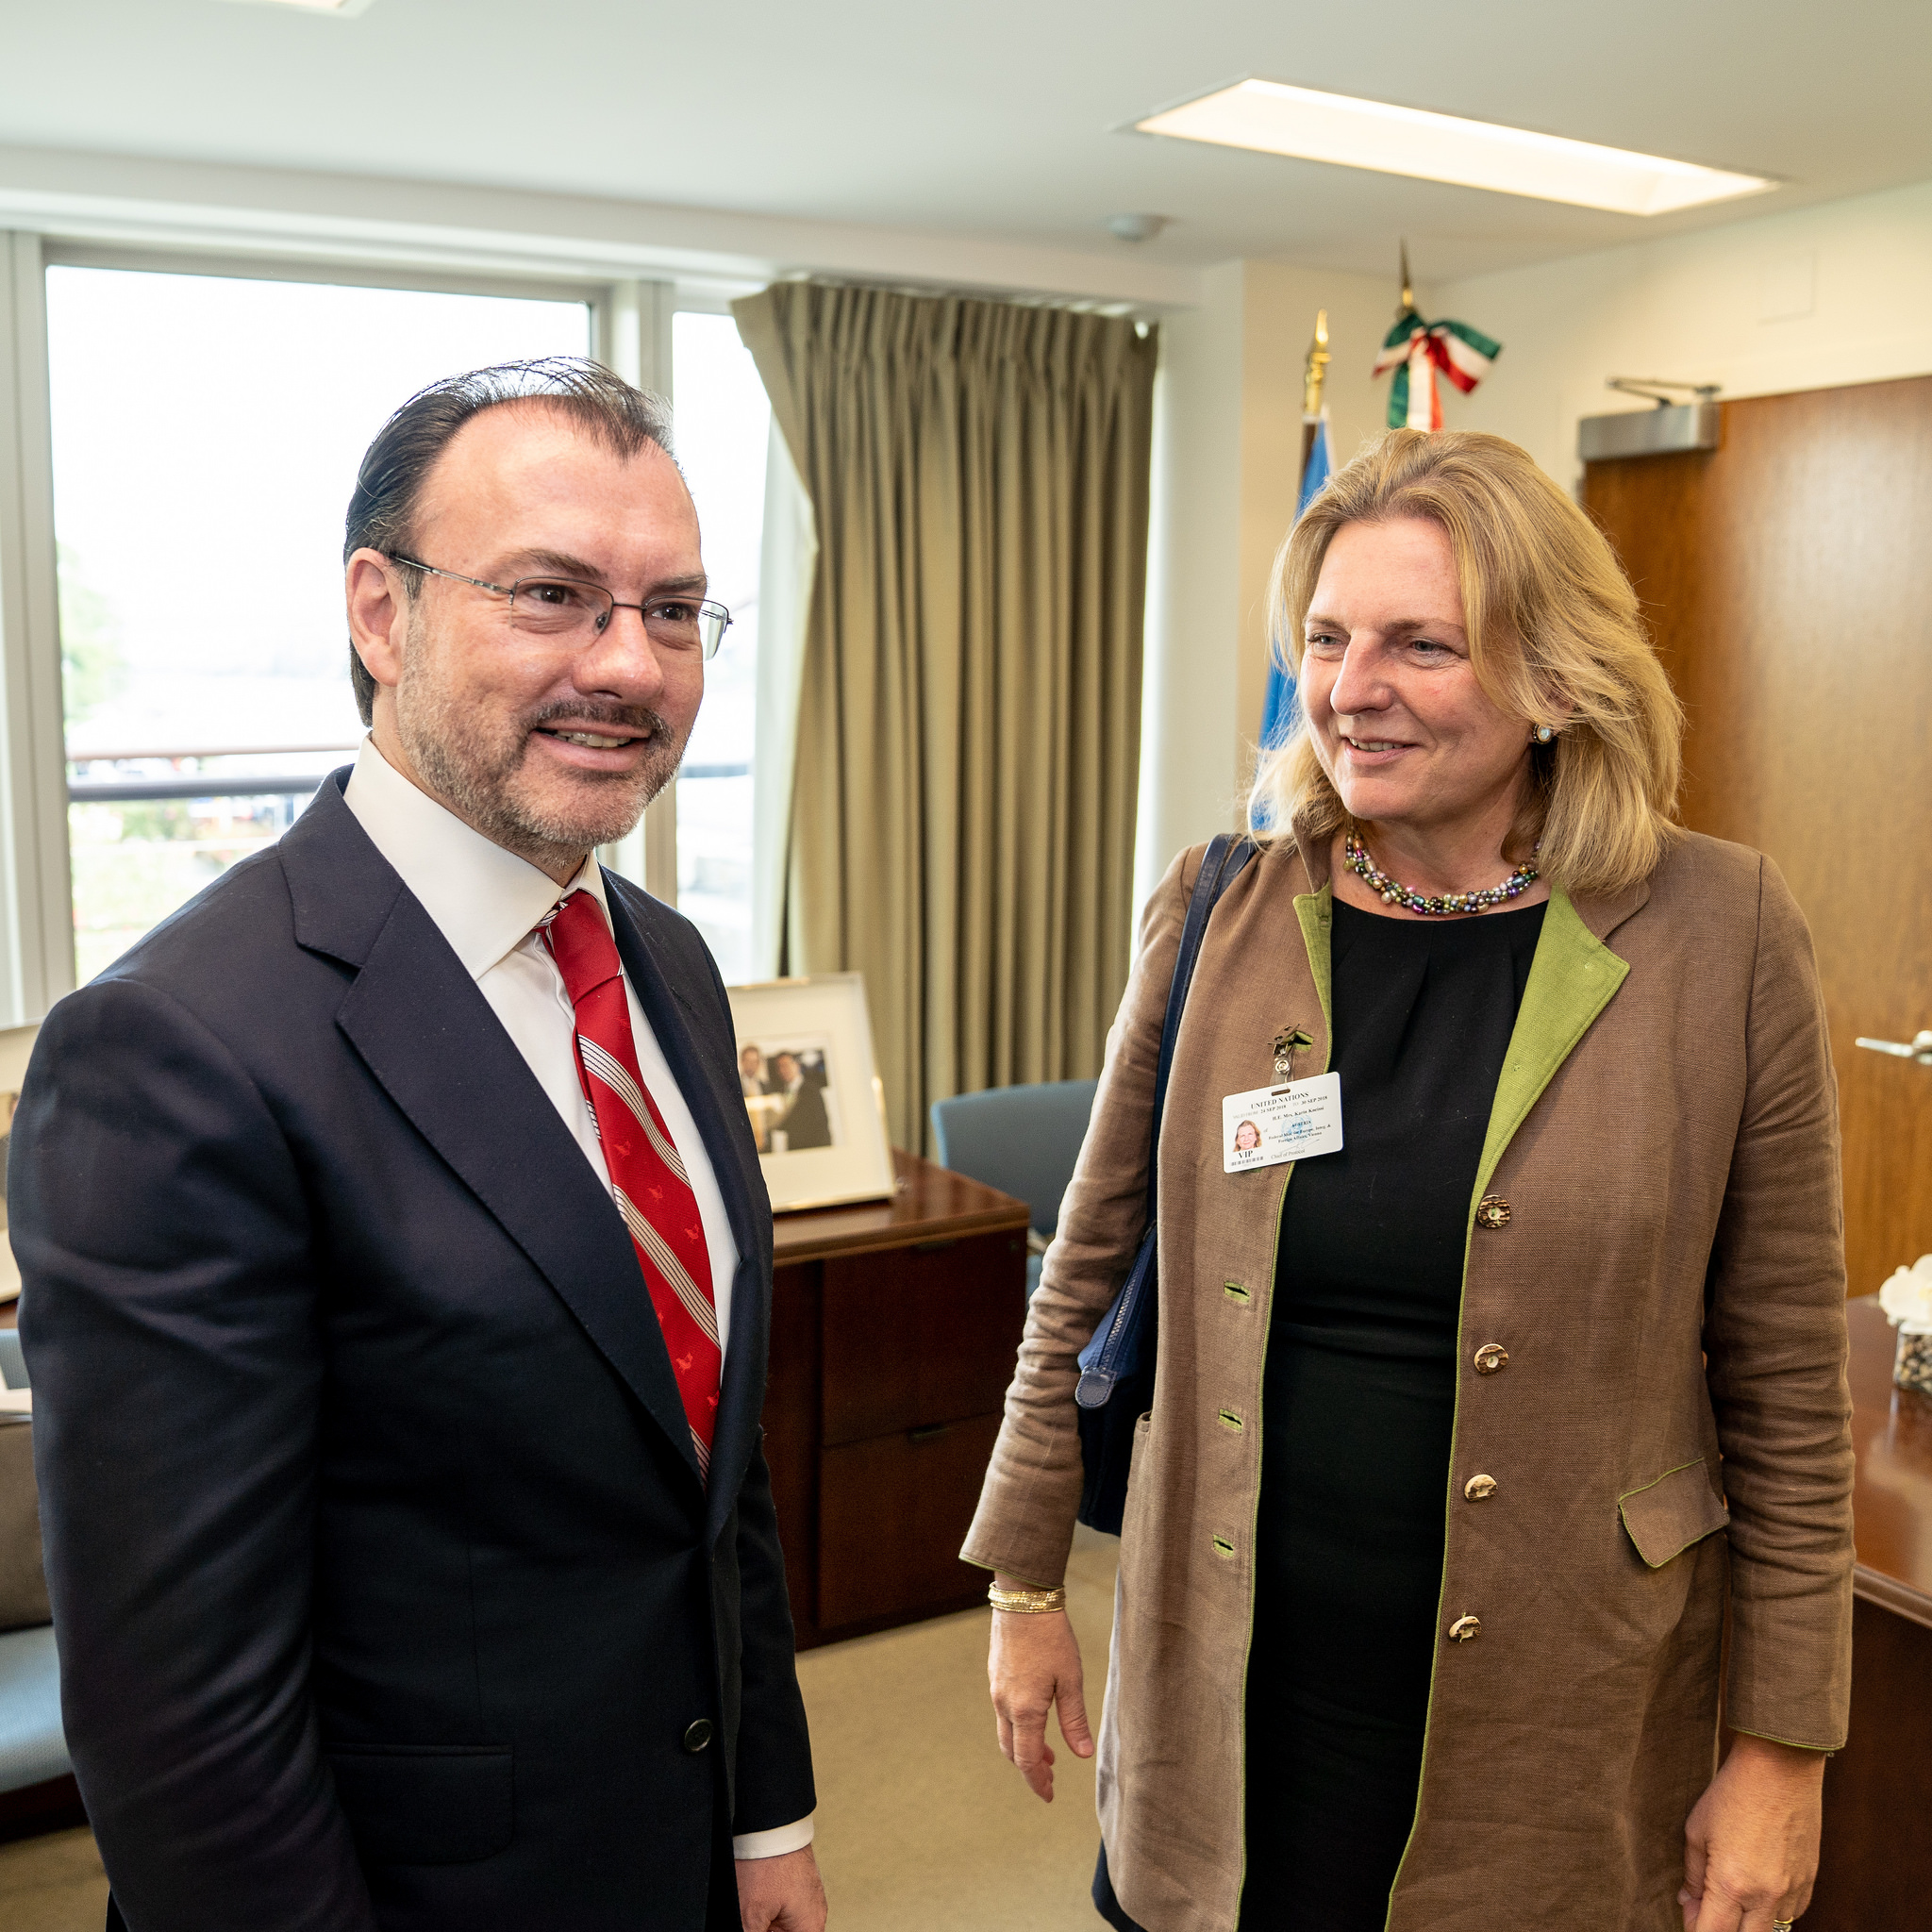 Foreign Minister Karin Kneissl meets with Foreign Minister of Mexico, Luis Videgaray Caso (c) Austrian Ministry of Foreign Affairs